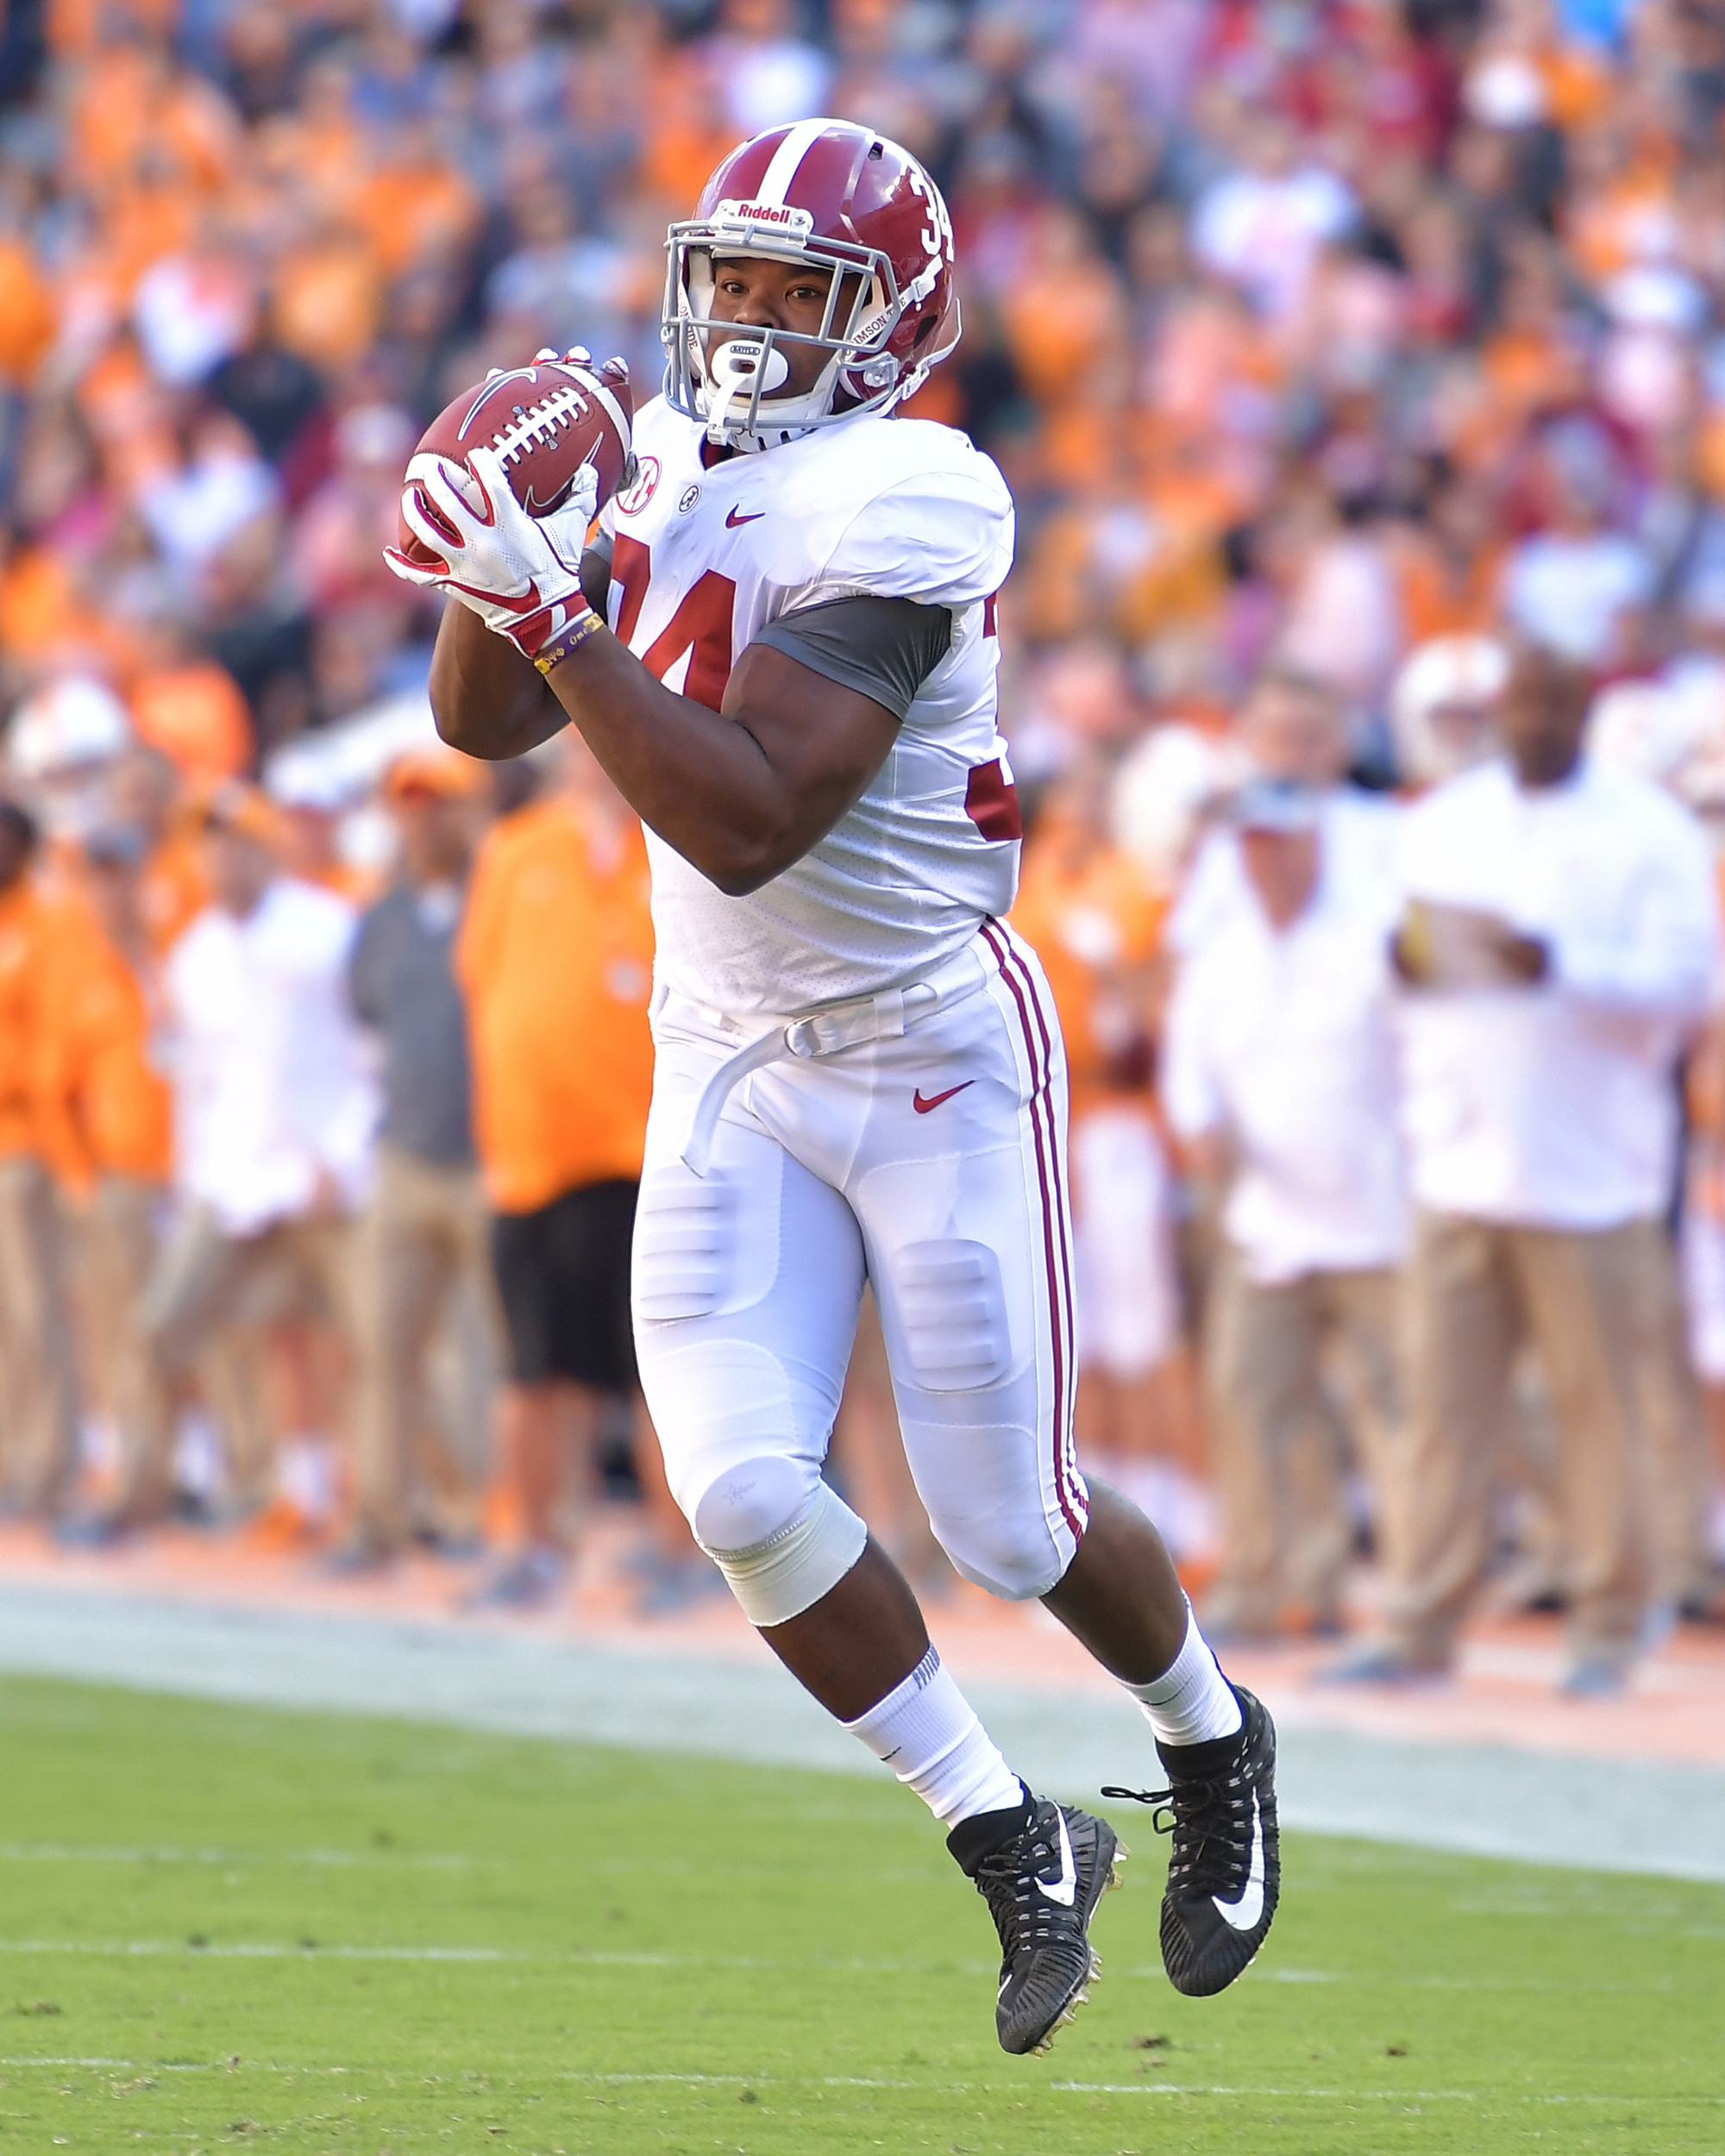 Alabama Crimson Tide running back Damien Harris (34) with a catch in the first half of the Alabama at Tennessee NCAA football game on Saturday, Oct. 20, 2018, at Neyland Stadium in Knoxville. Tenn. Alabama wins 58-21. (Photo by Lee Walls)